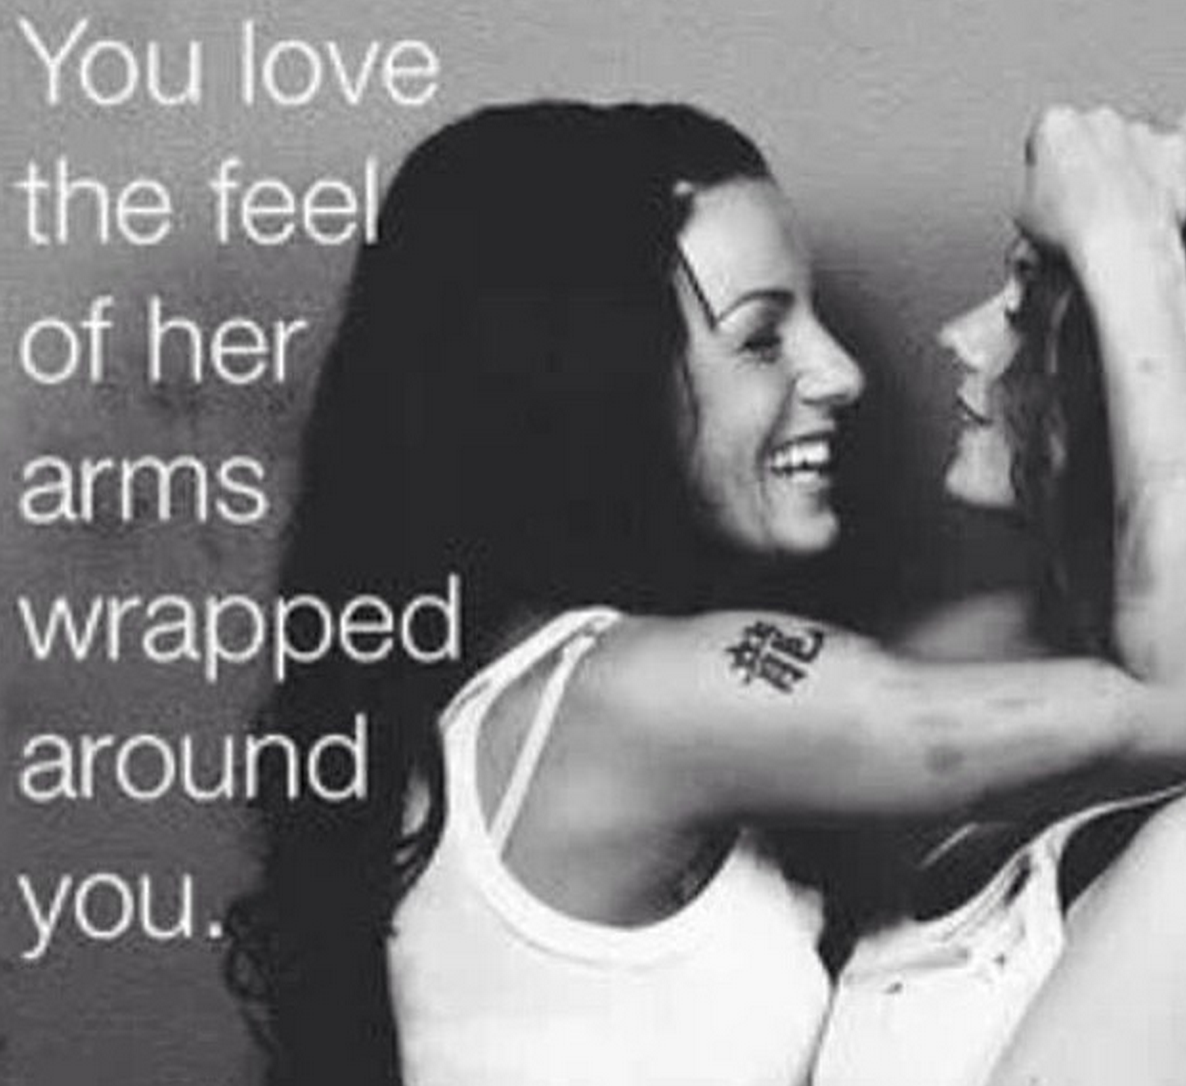 i love the feel of your arms wrapped around me